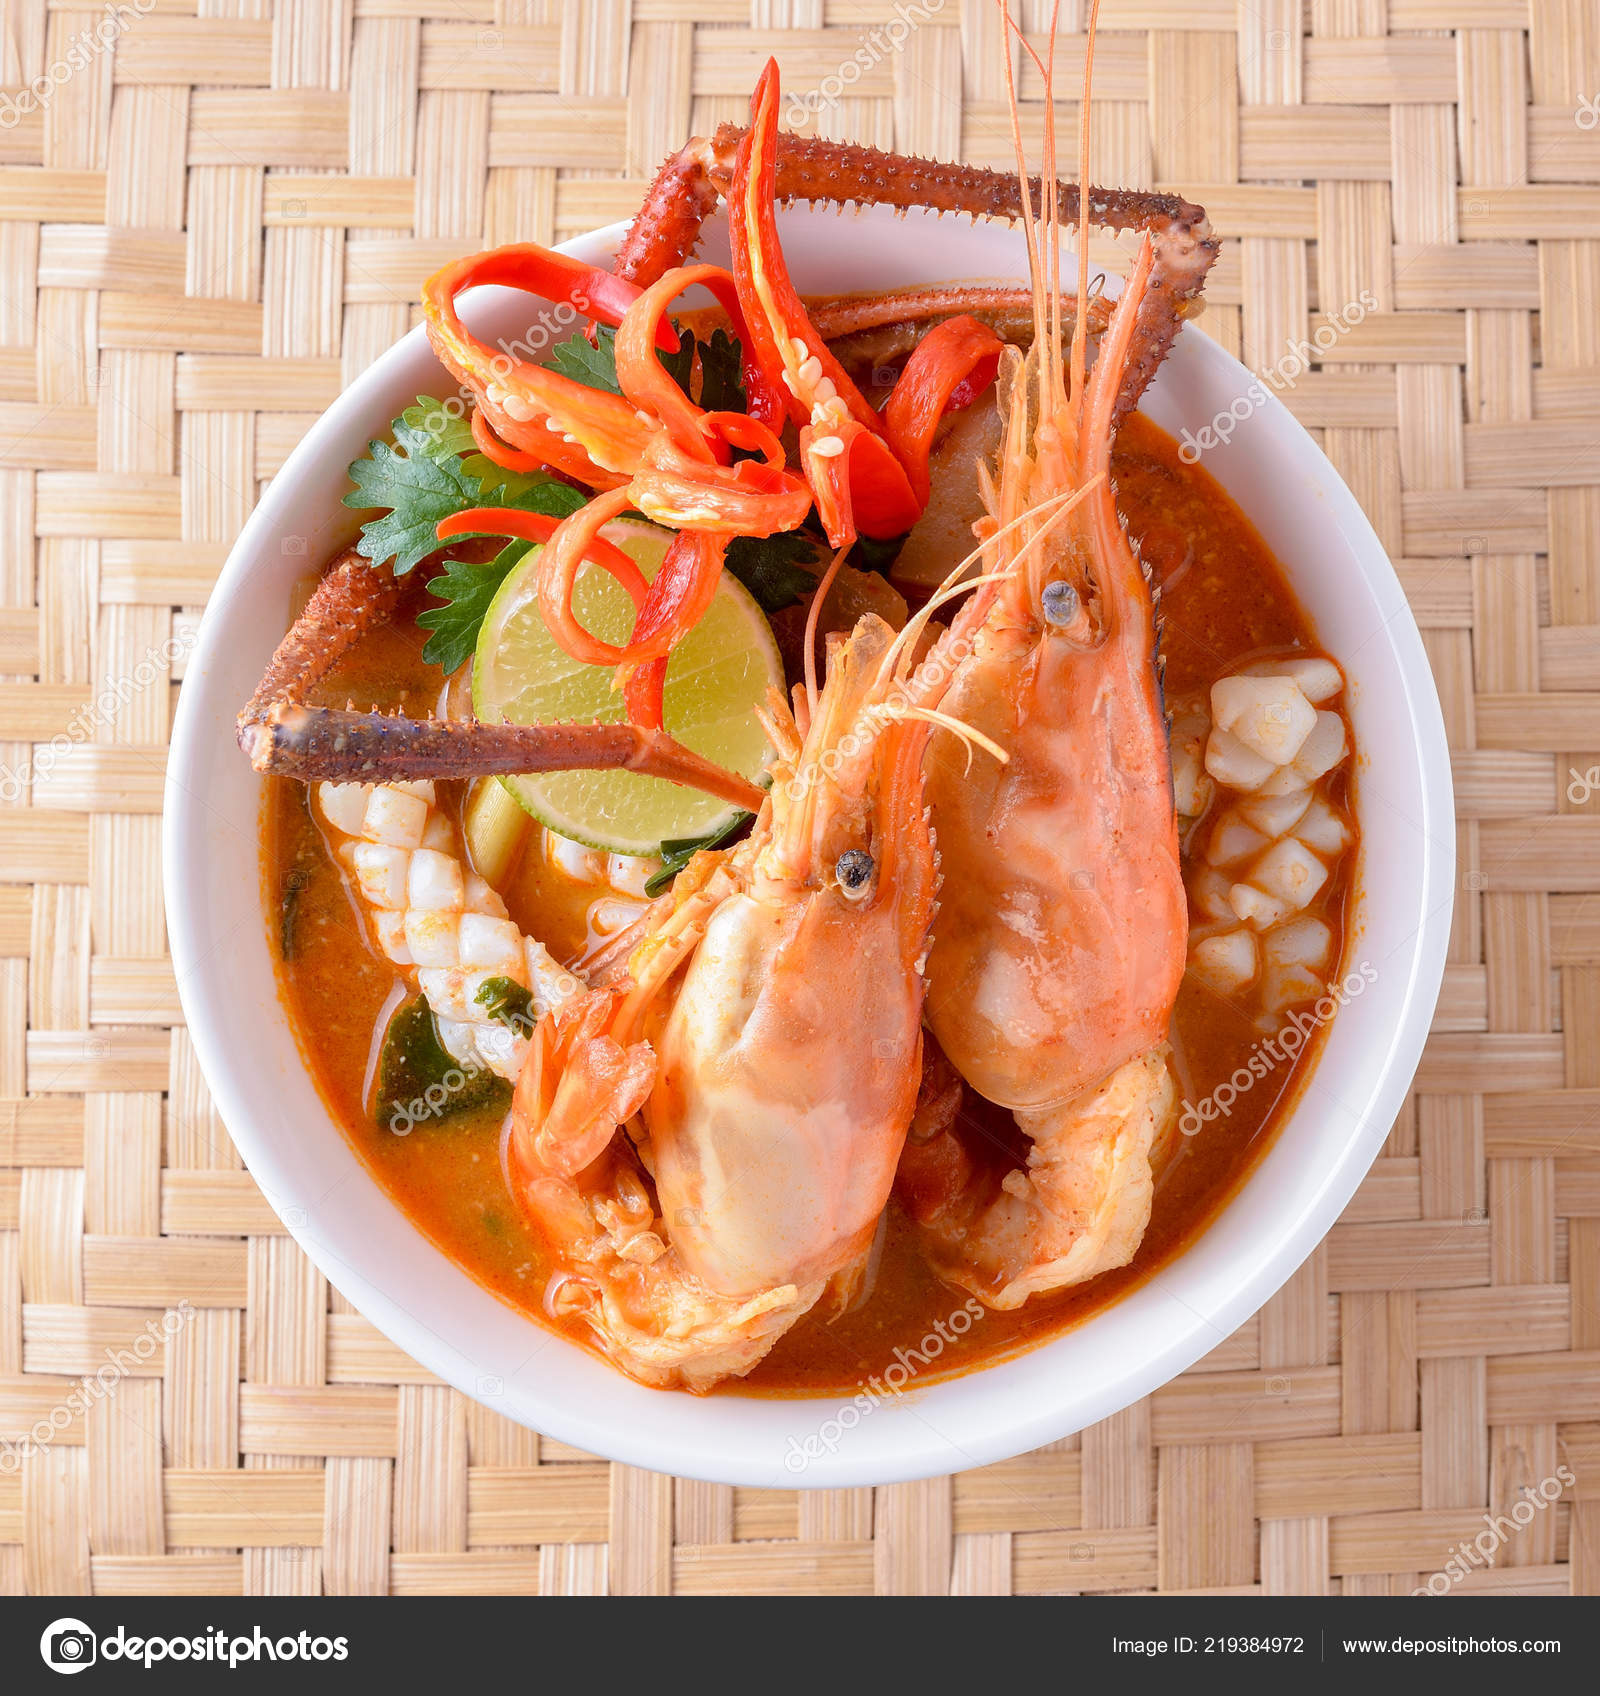 Cuisine Yam Tom Yam Kung Thai Cuisine Stock Photo Soloist Nan Hotmail